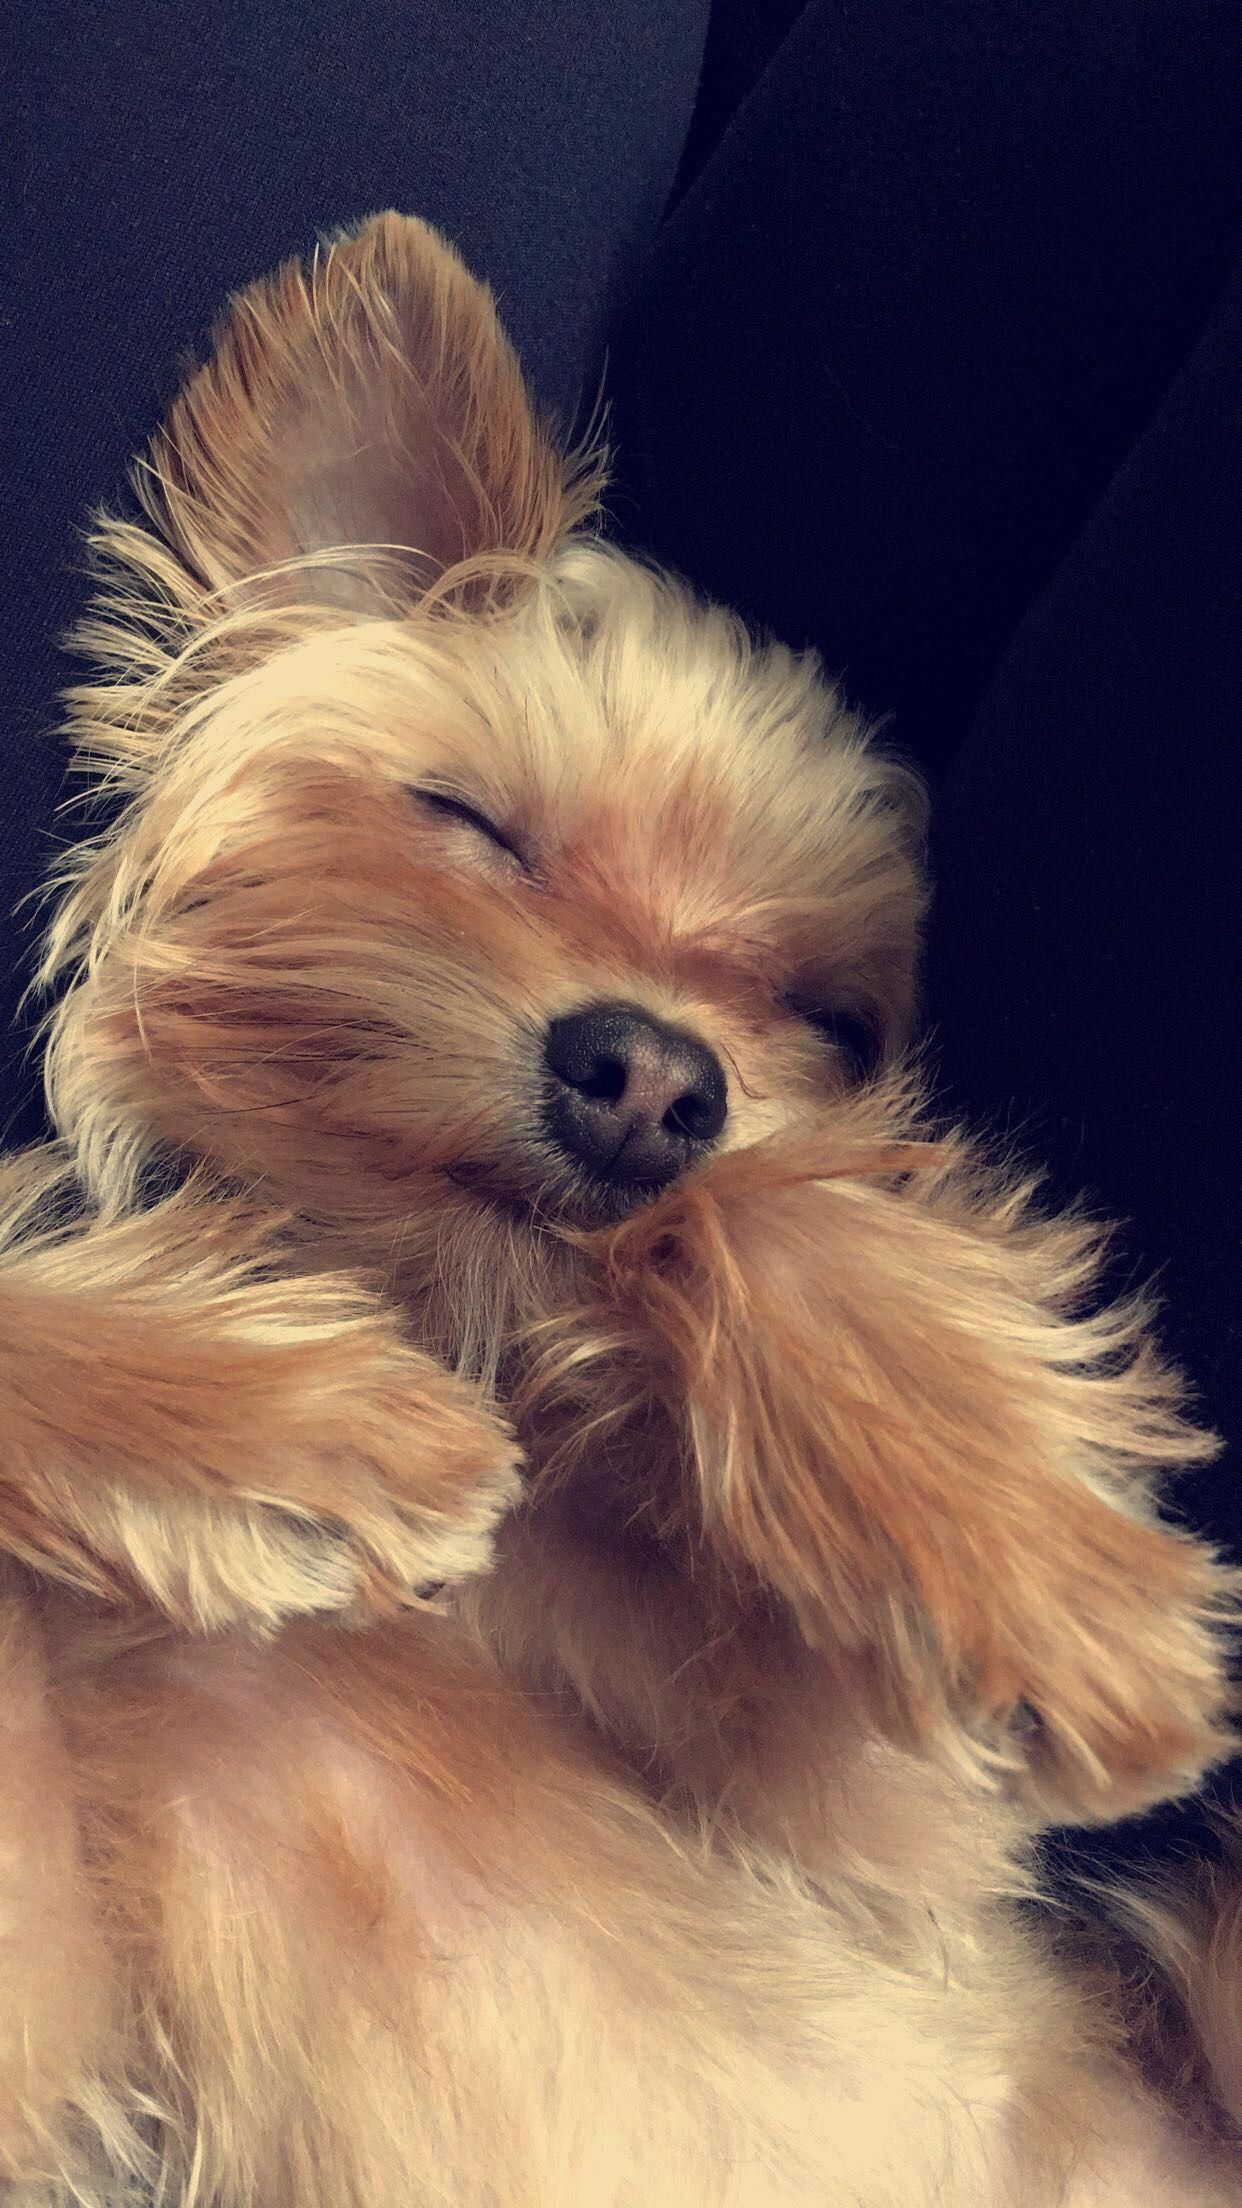 The Coziest Pup Yorkshire Terrier Dog Yorkie Dogs Yorkshire